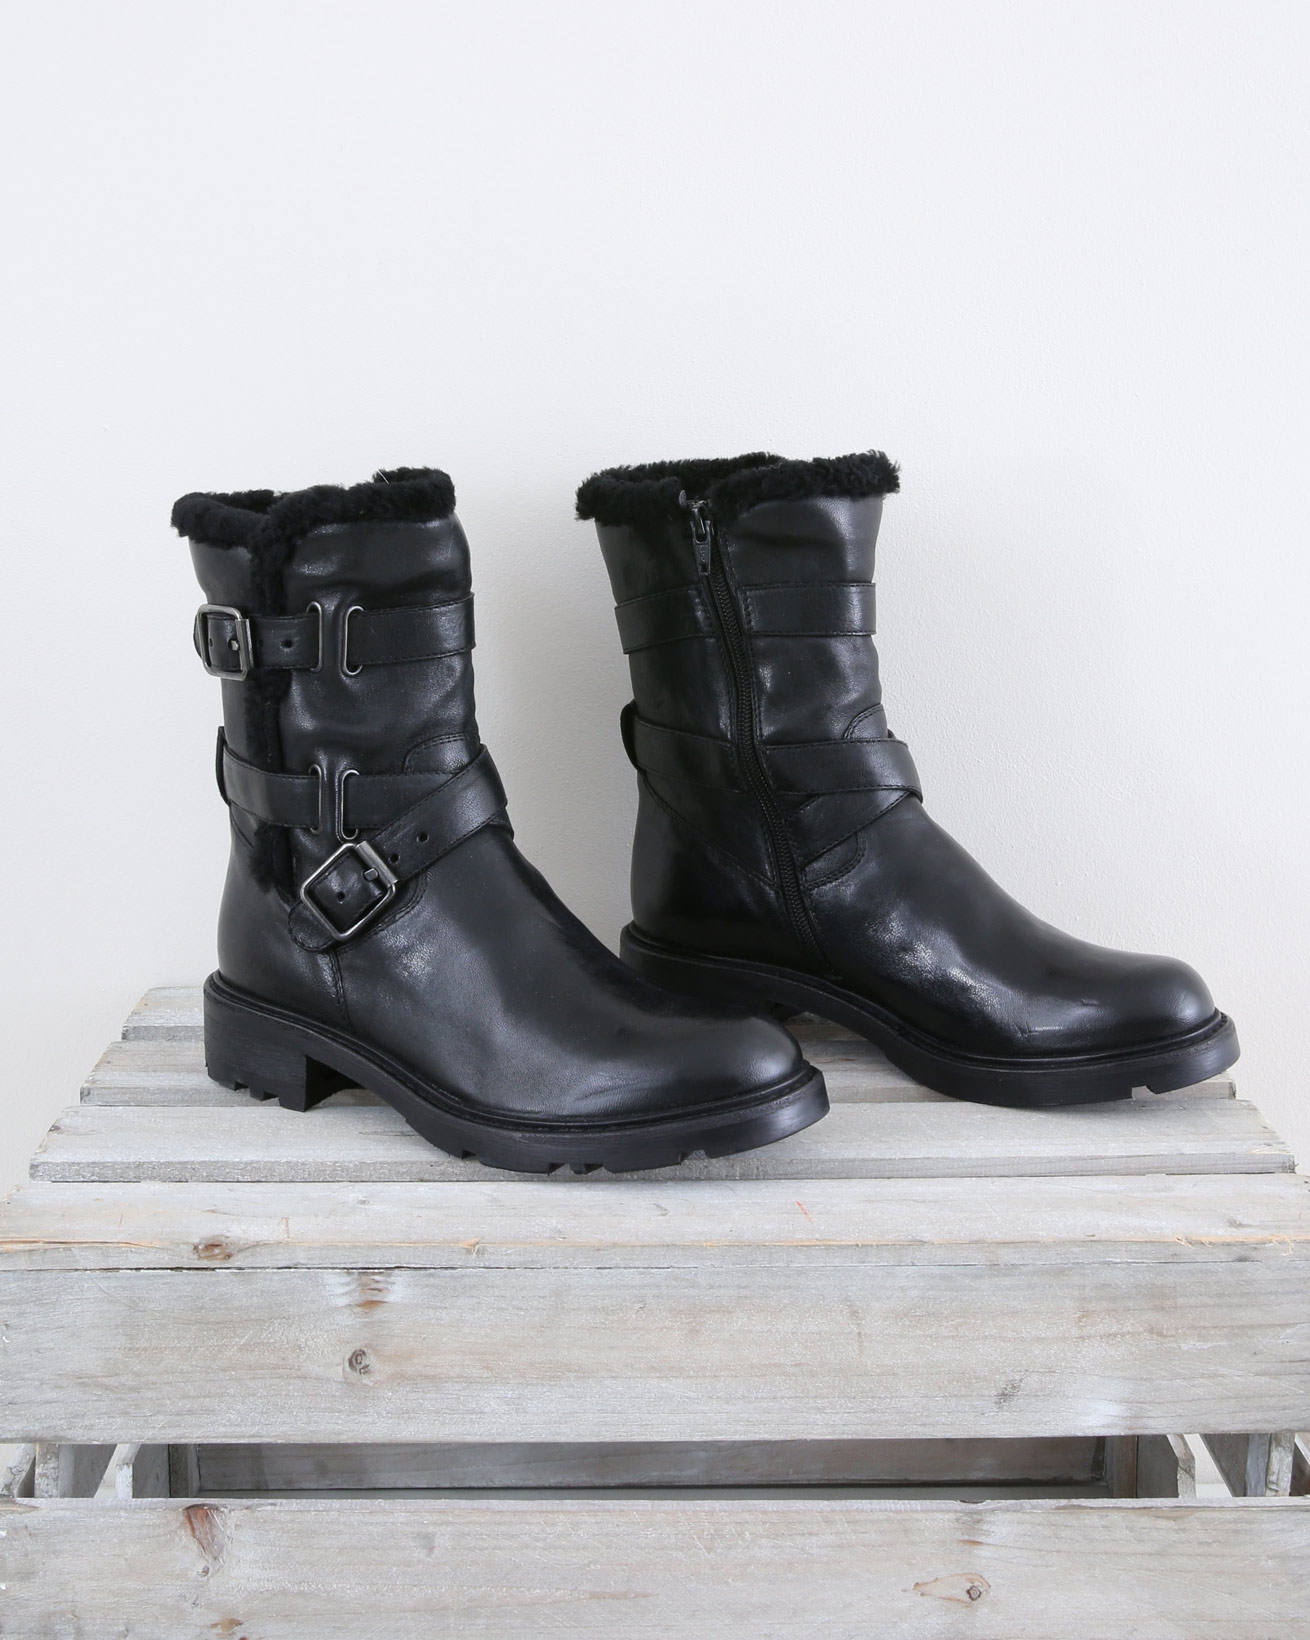 Biker Boot with Sheepskin Trim - Size 37 - Black - 1463